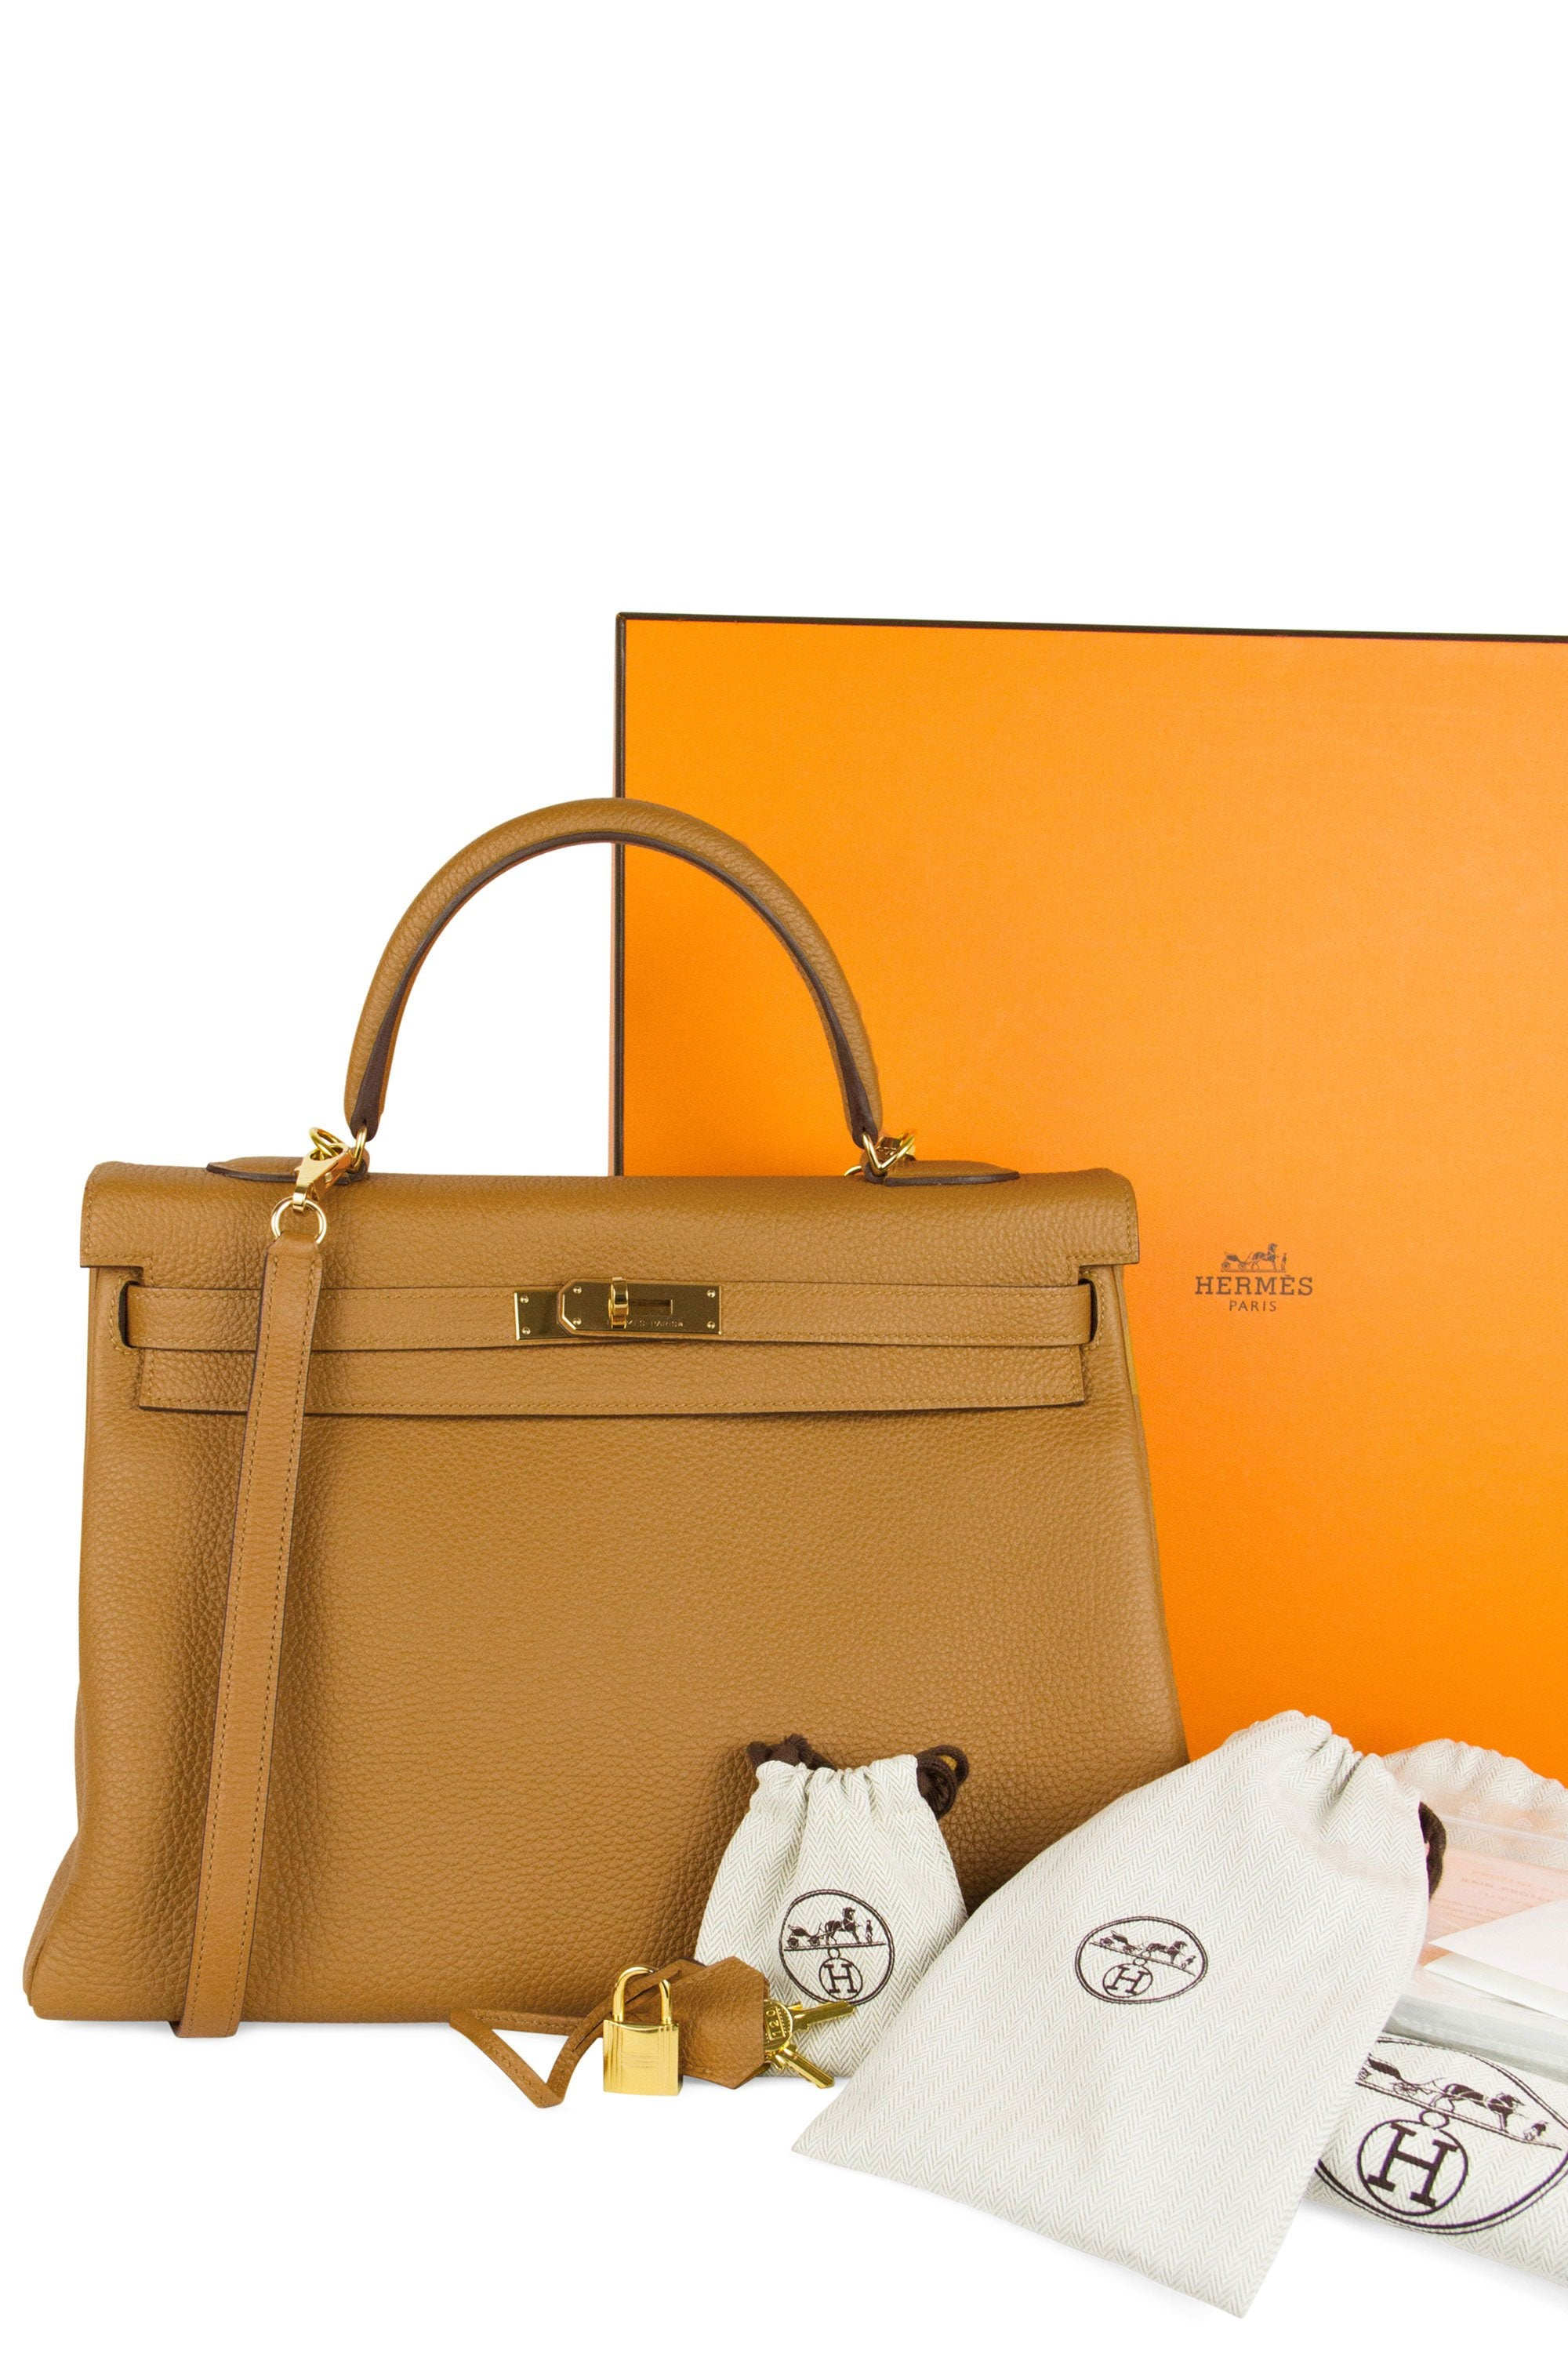 Hermès Kelly 35 Bag Caramel Togo Leather Full Set